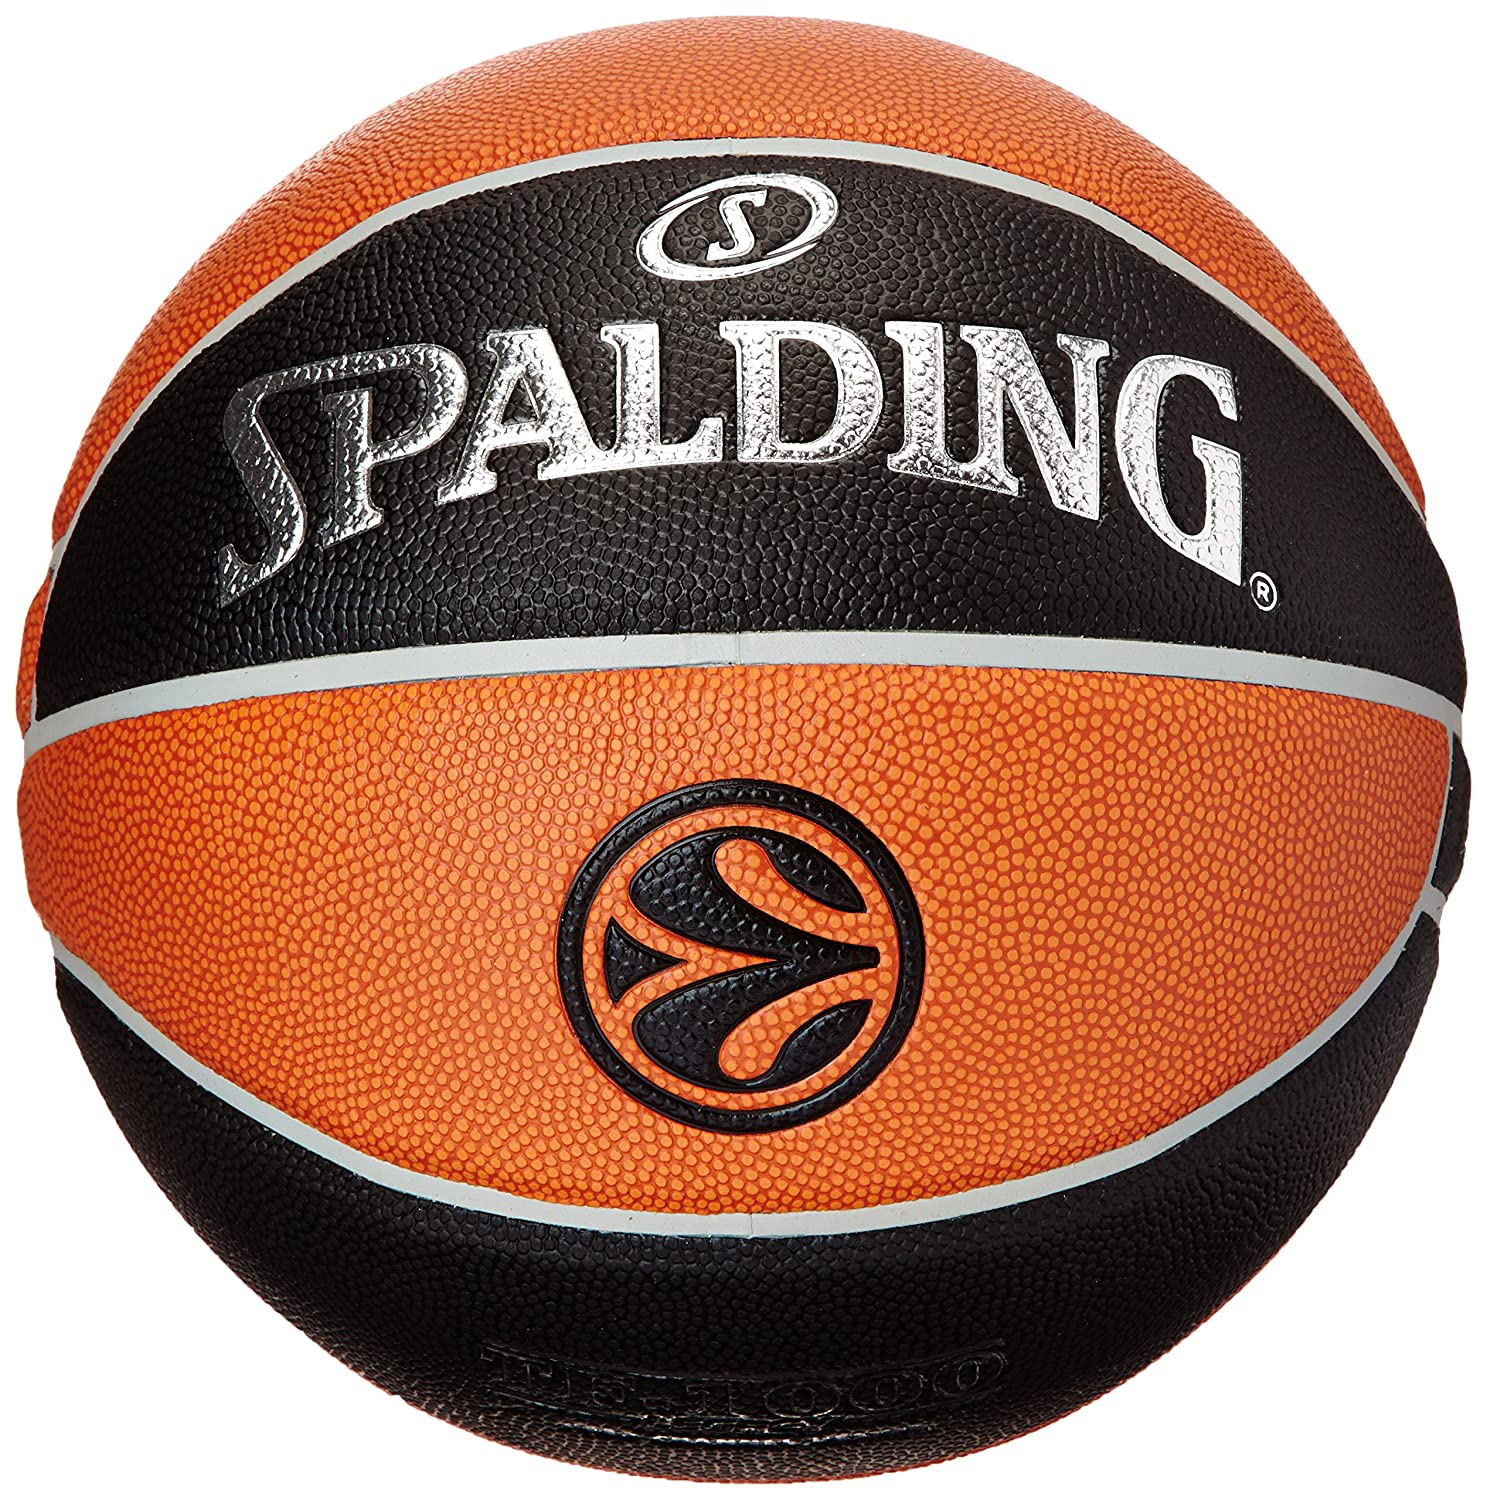 Spalding Euroleague Tf1000 Legacy Sz. 7 74-538Z Balón de ...